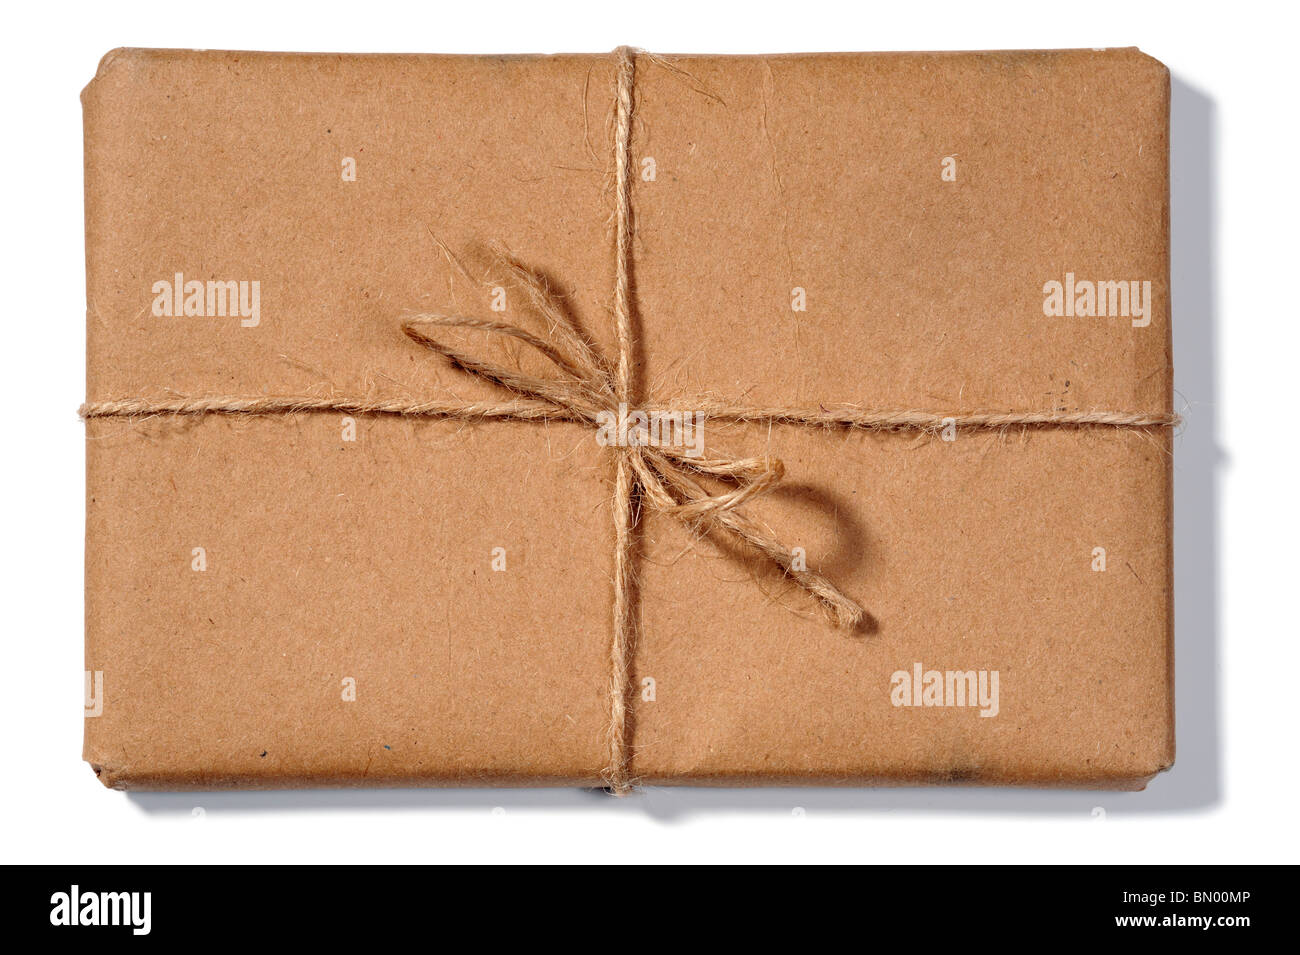 Package tied with string - Stock Image